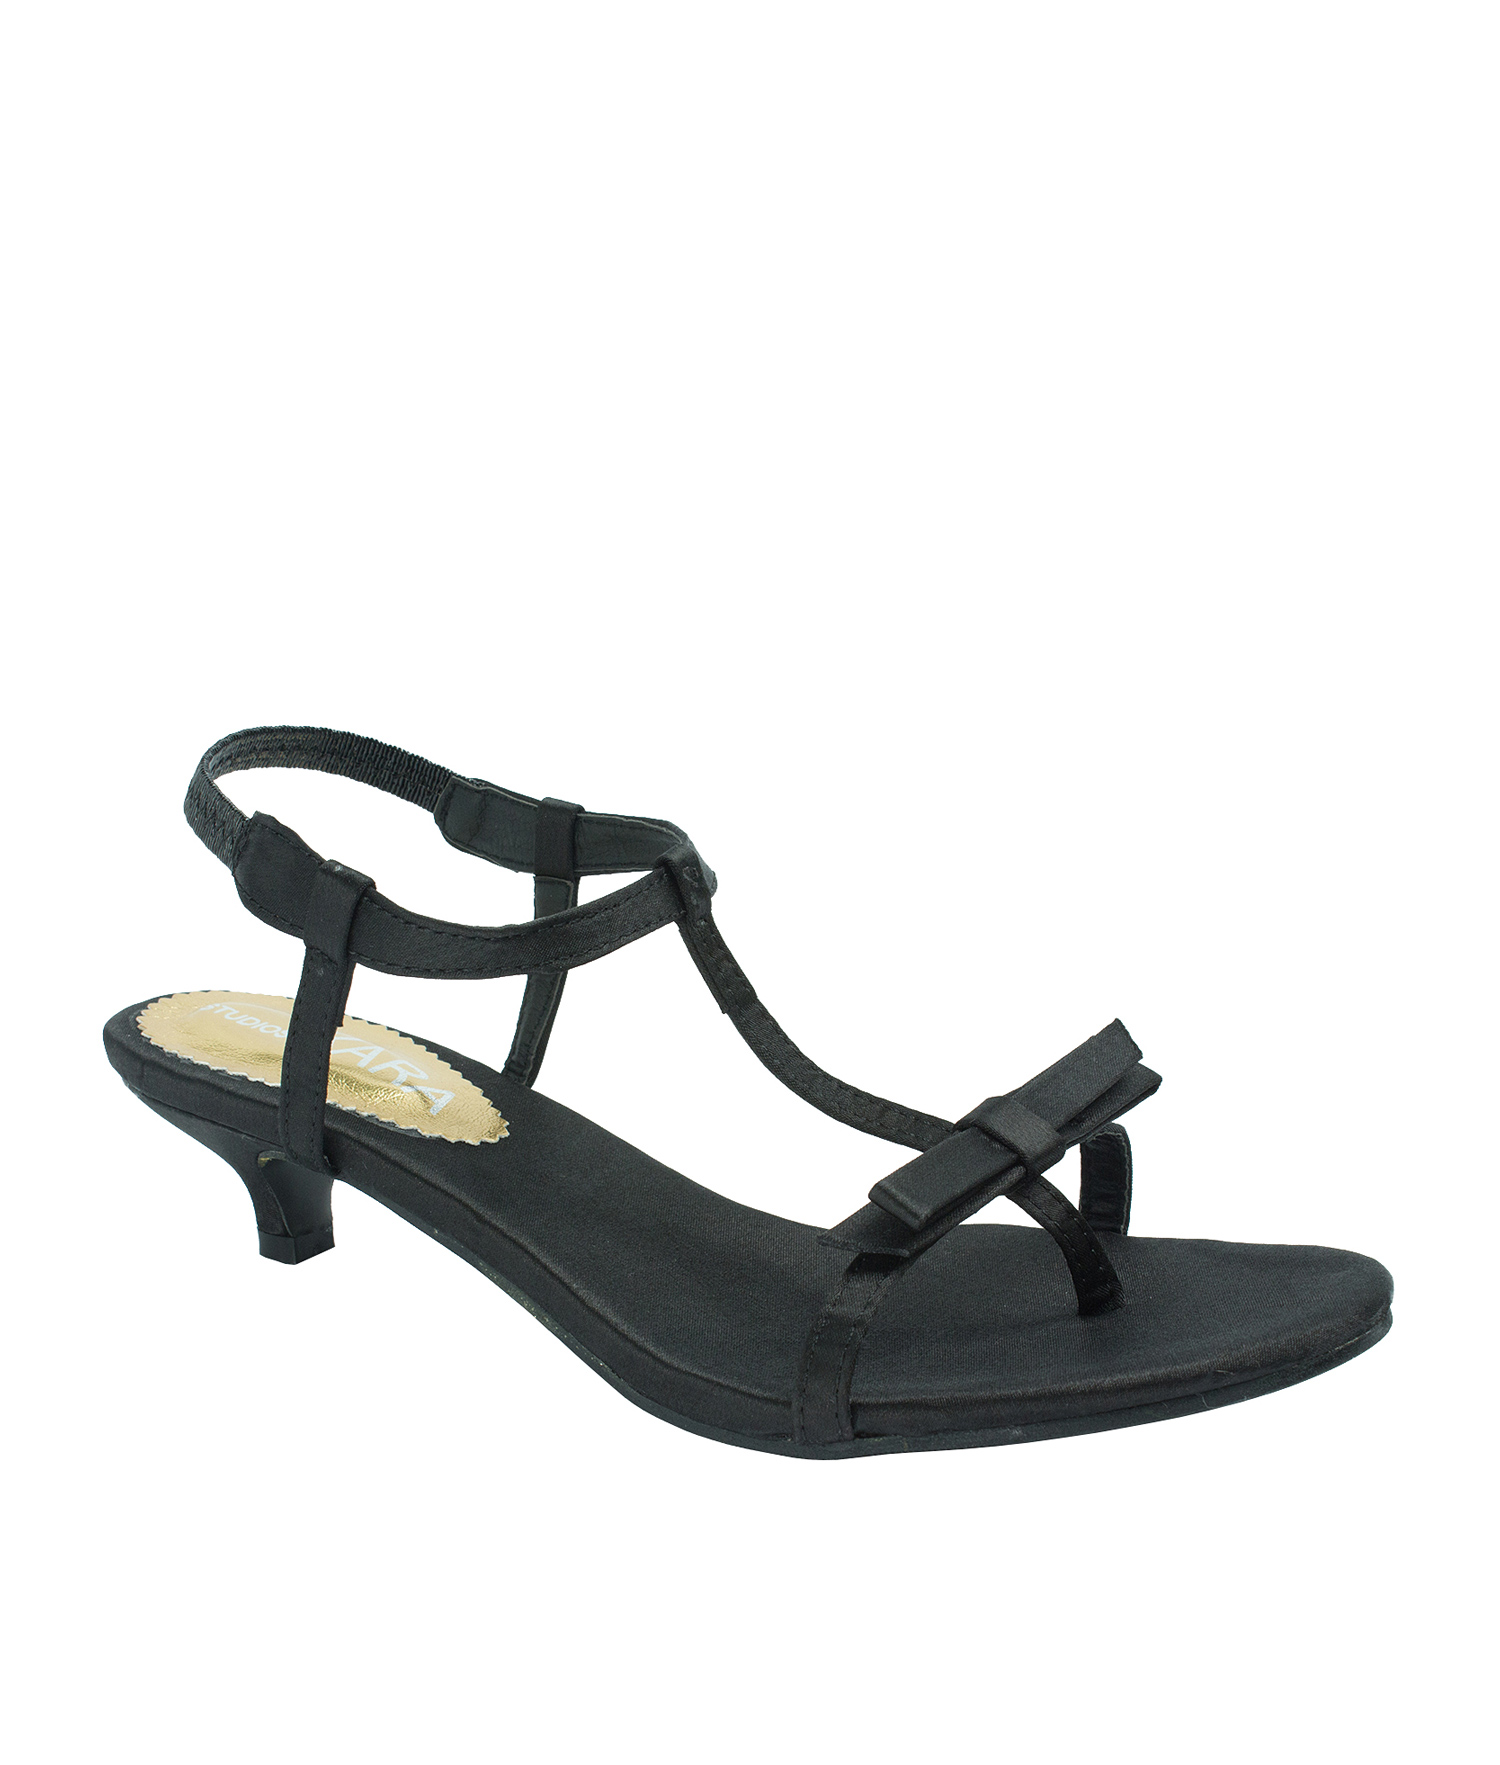 f689dc9803f Bow Detail Black T-Strap Sandals - annakastleshoes.com